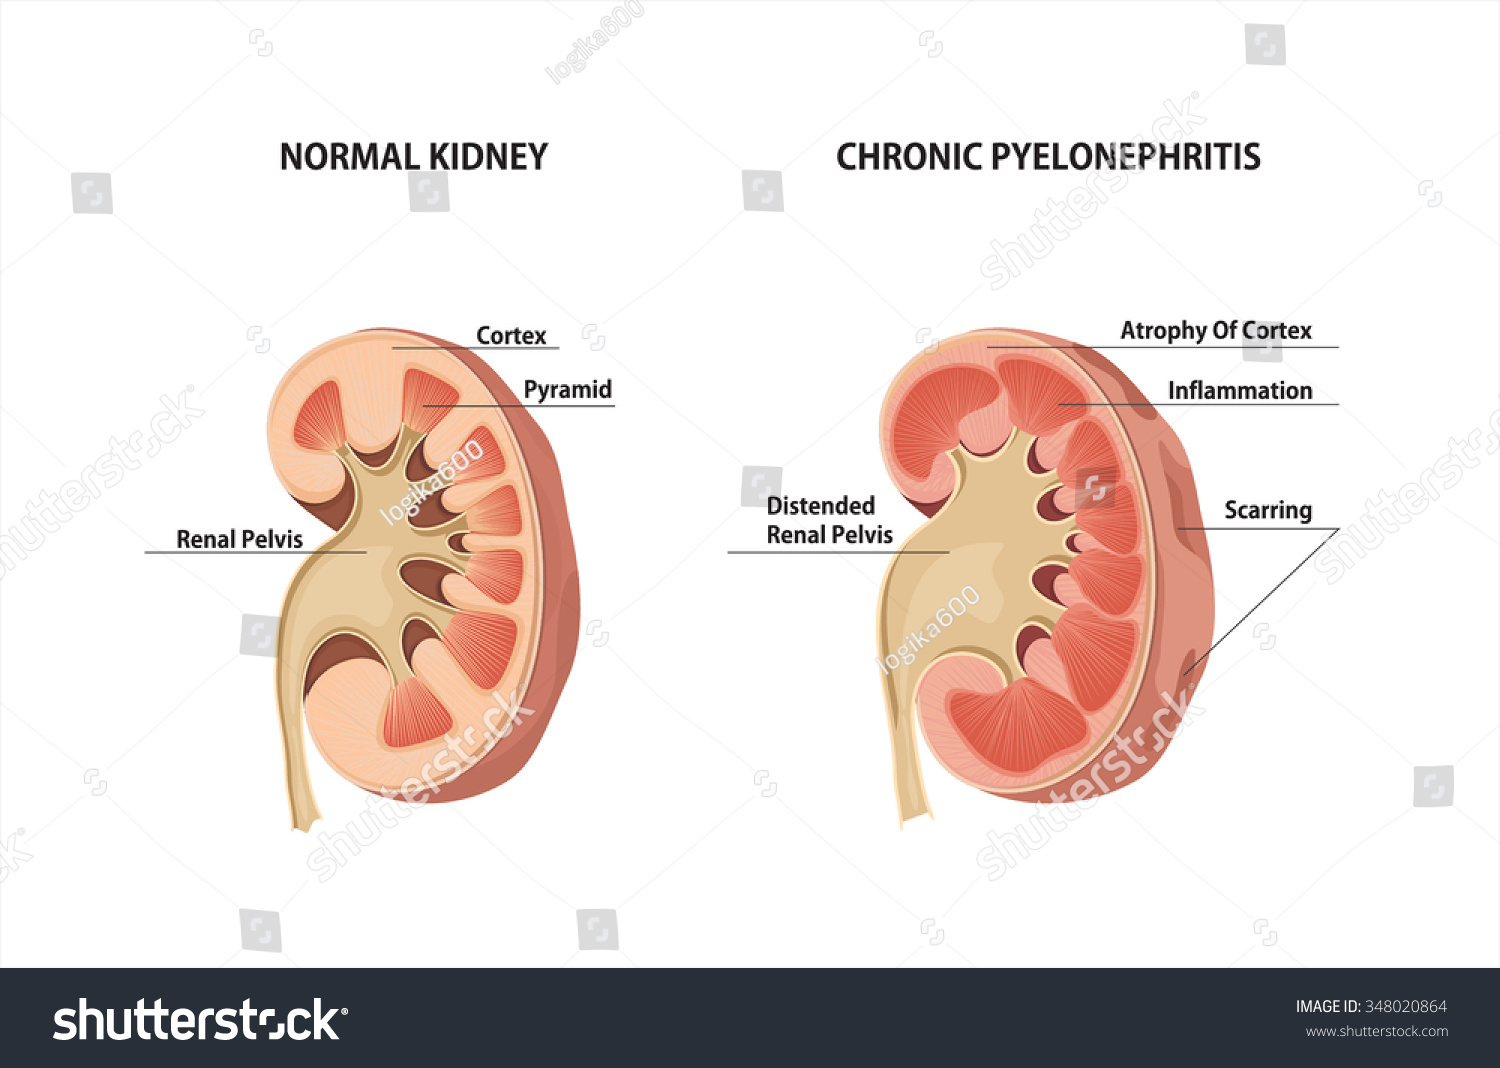 chronic pyelonephritis - photo #6